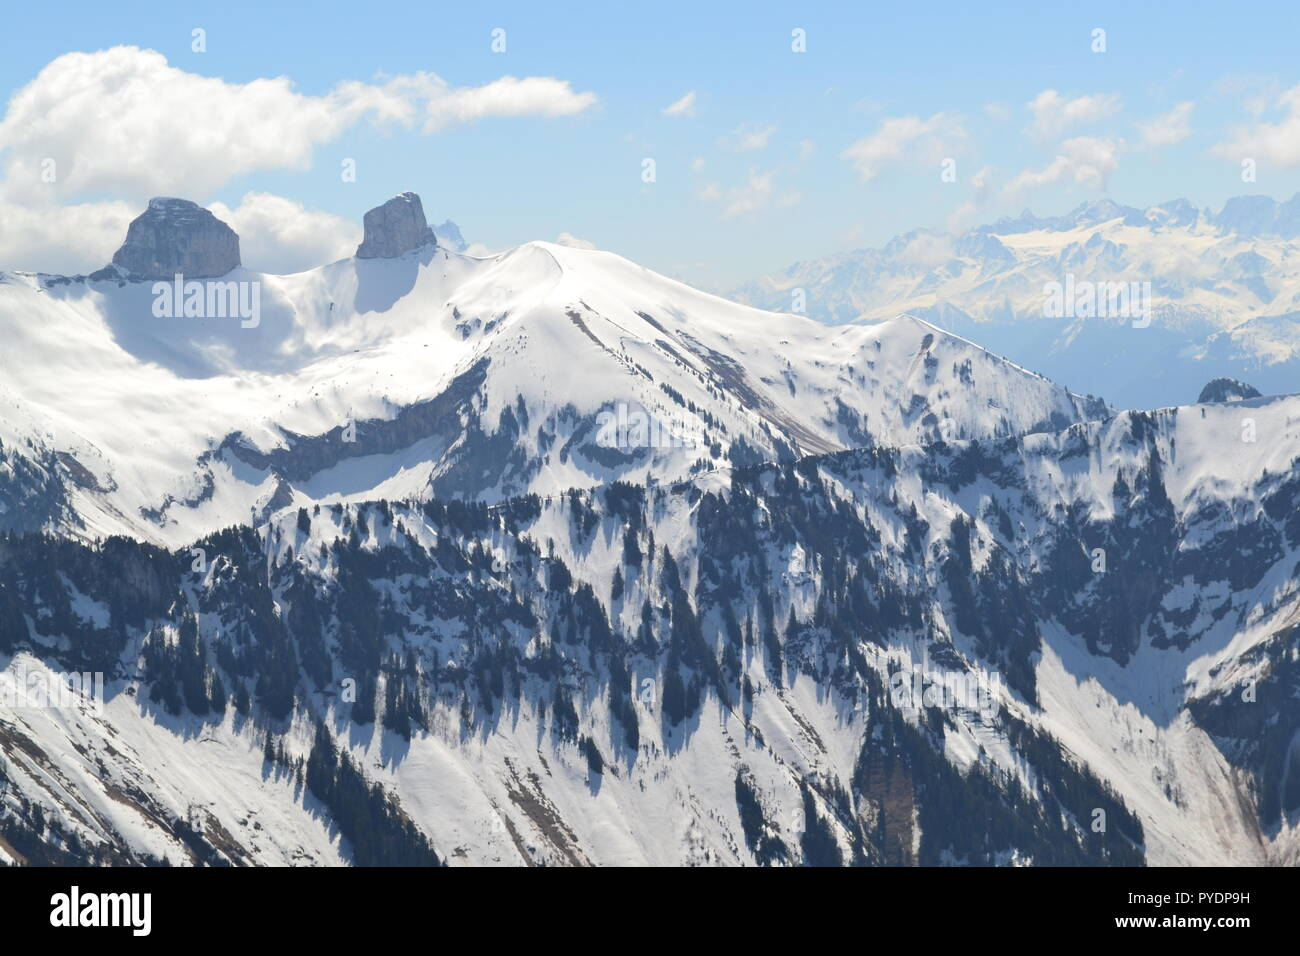 View from Les Rochers de Naye, reached by MOB train from Montreux. To west is Lake Geneva, Lausanne. To east famous peaks including Eiger, Monch etc - Stock Image